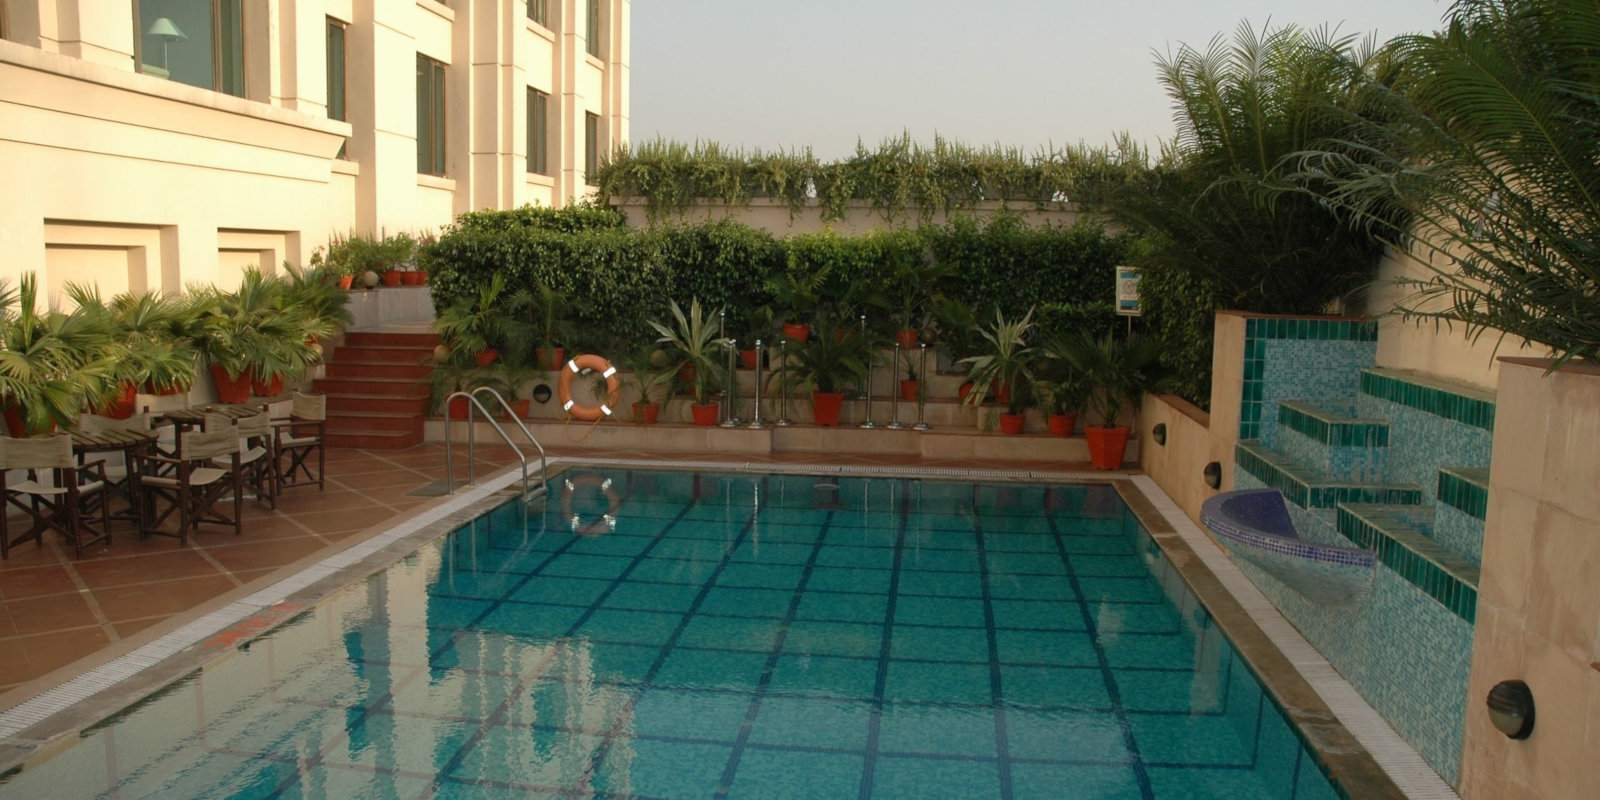 The Radisson's pool is a lovely spot to cool down after a day of exploring Varanasi